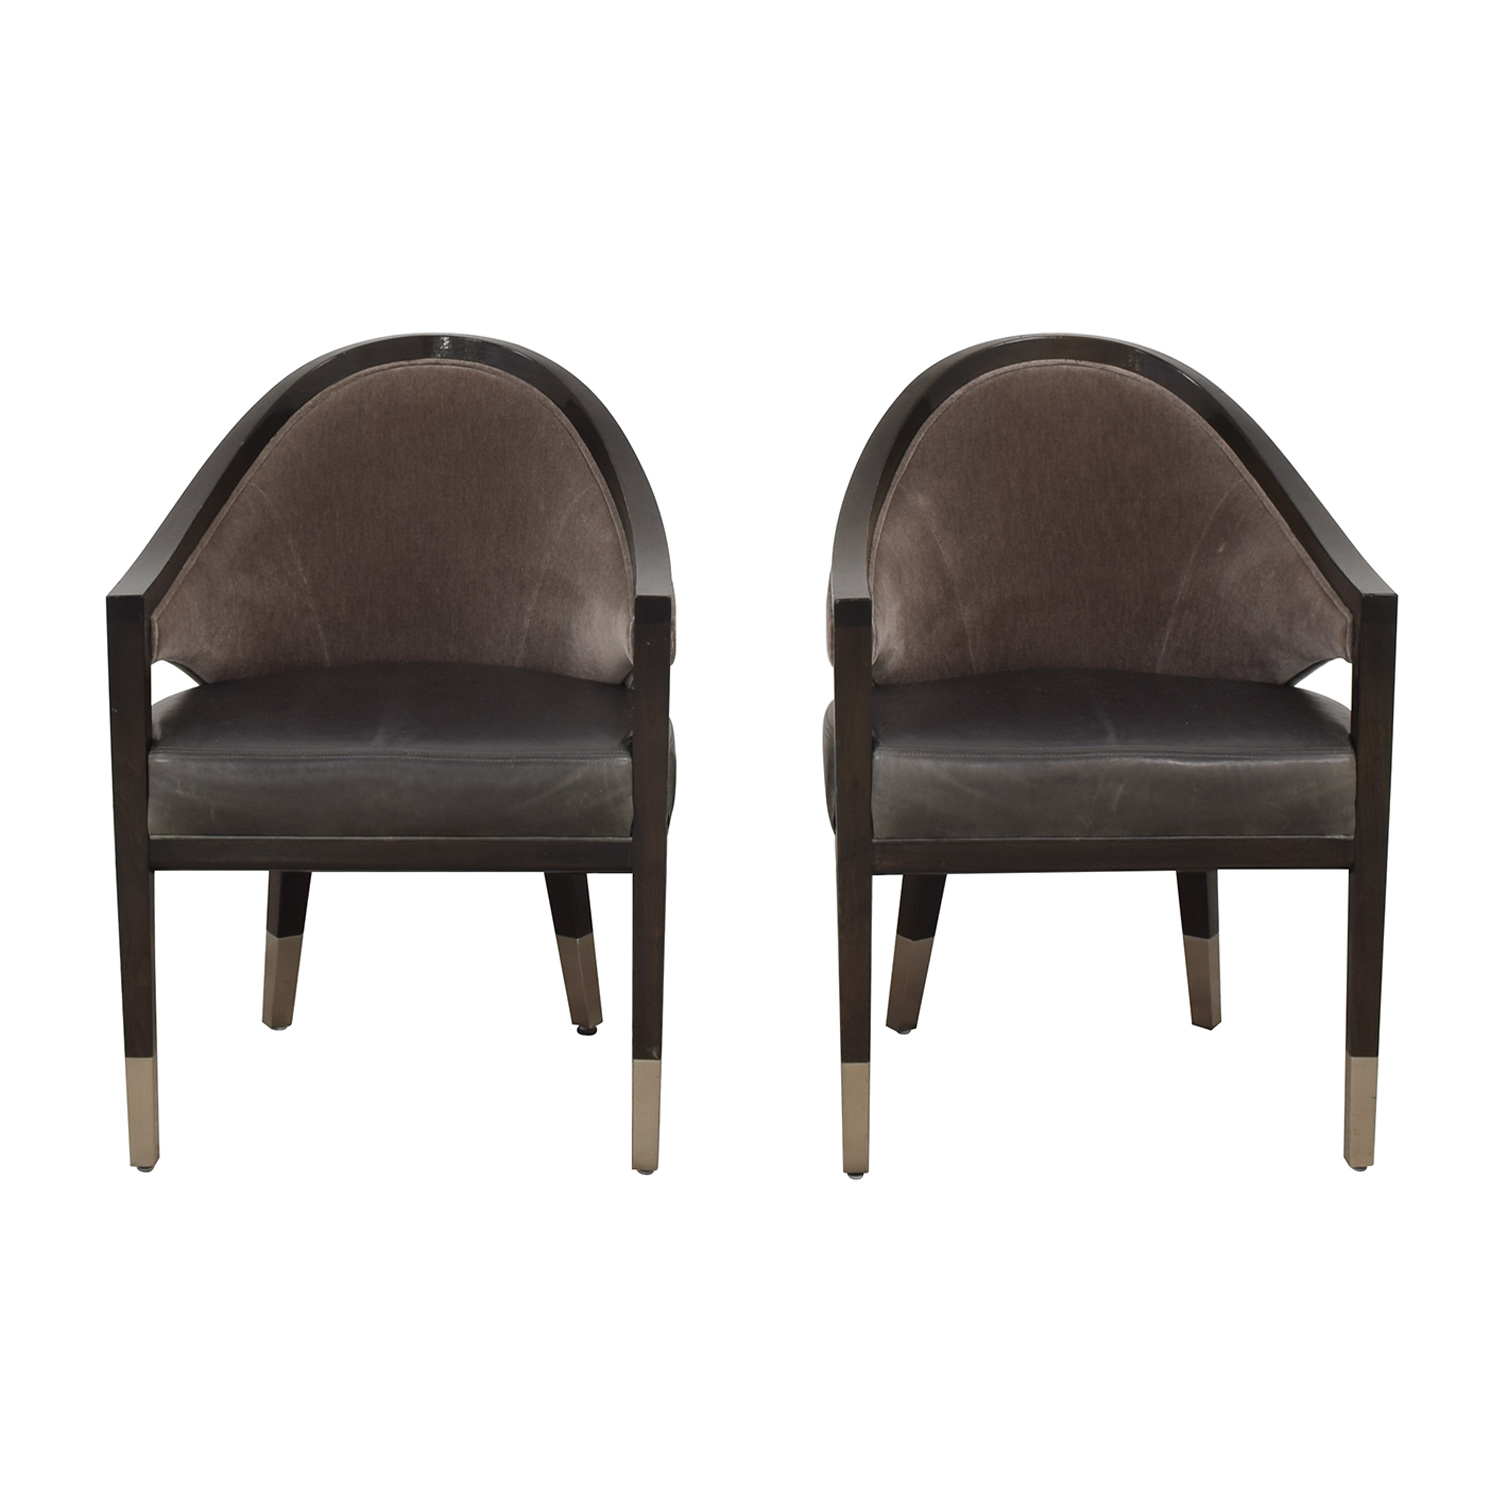 Allied Form Works Allied Works Eleven Madison Park Dining Room Chairs Chairs